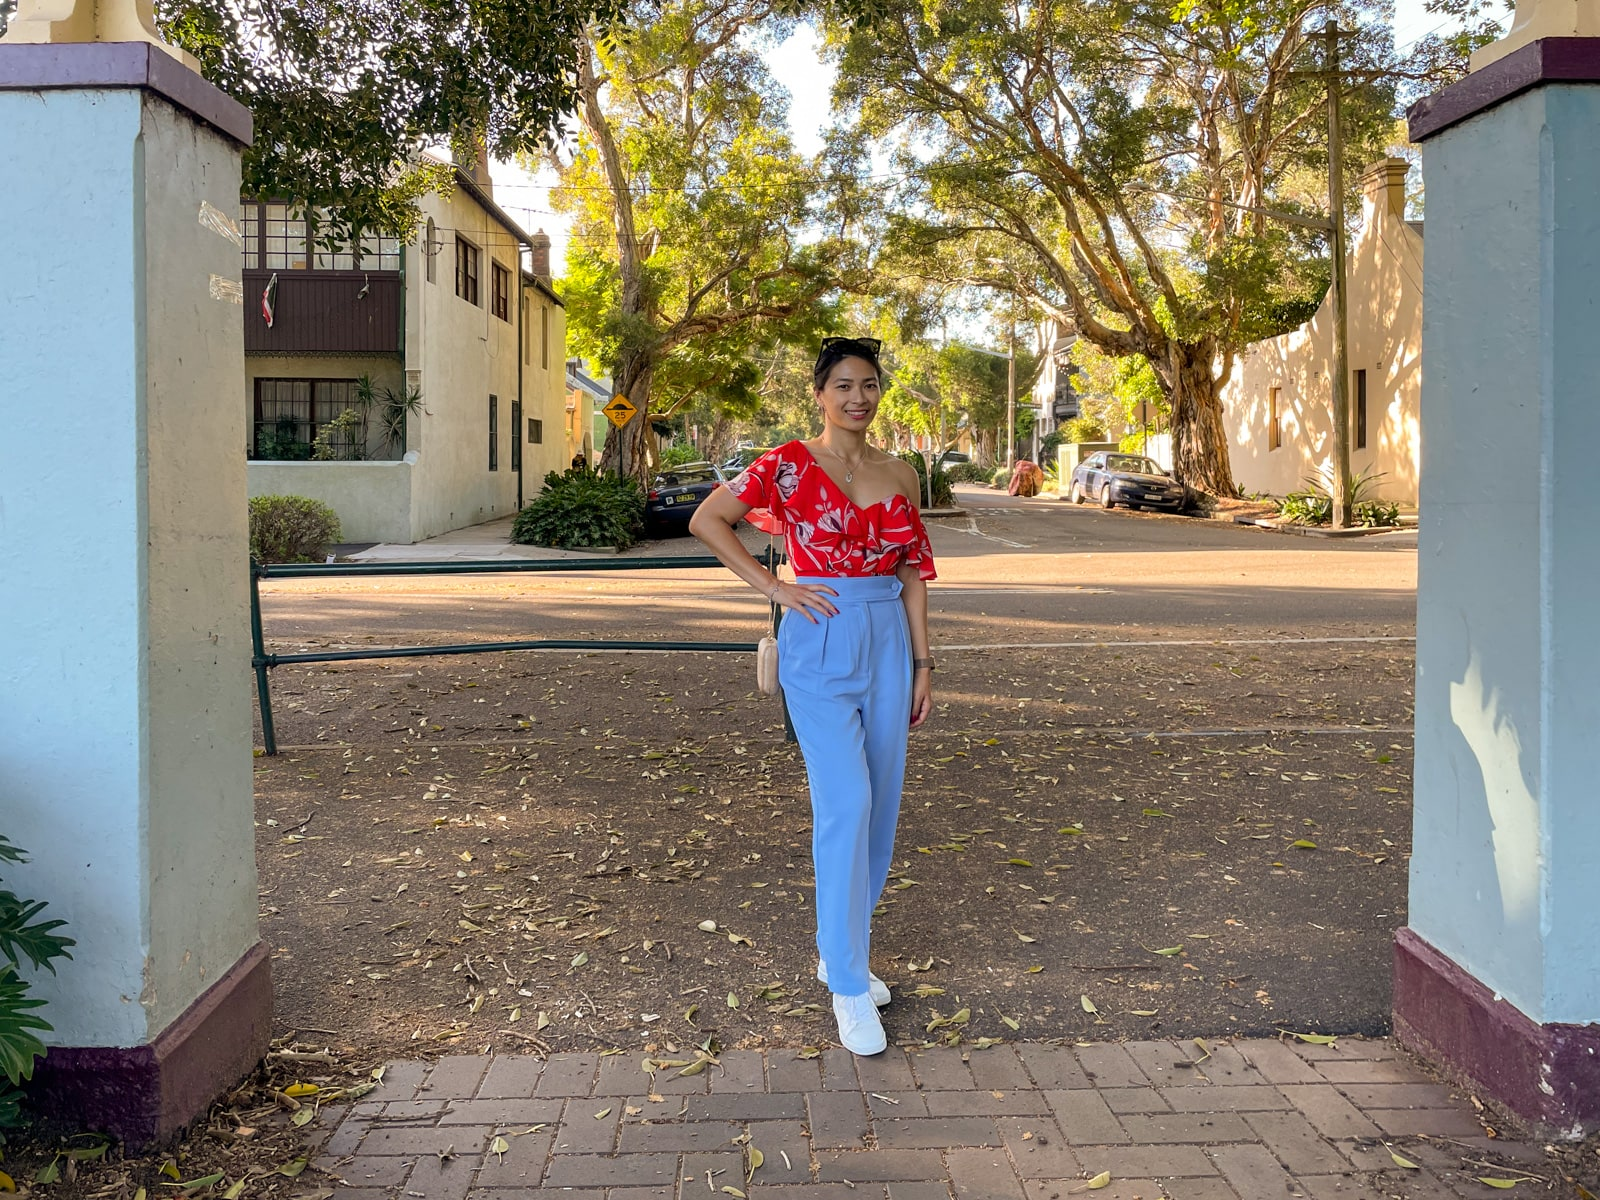 An Asian woman wearing a red top with a floral print, and blue pants, with her hair tied back in a low ponytail. She has a hand on her hip, showing a gold coloured rounded rectangular clutch bag hanging from a chain on her shoulder. She is standing under a concrete arch at a park.